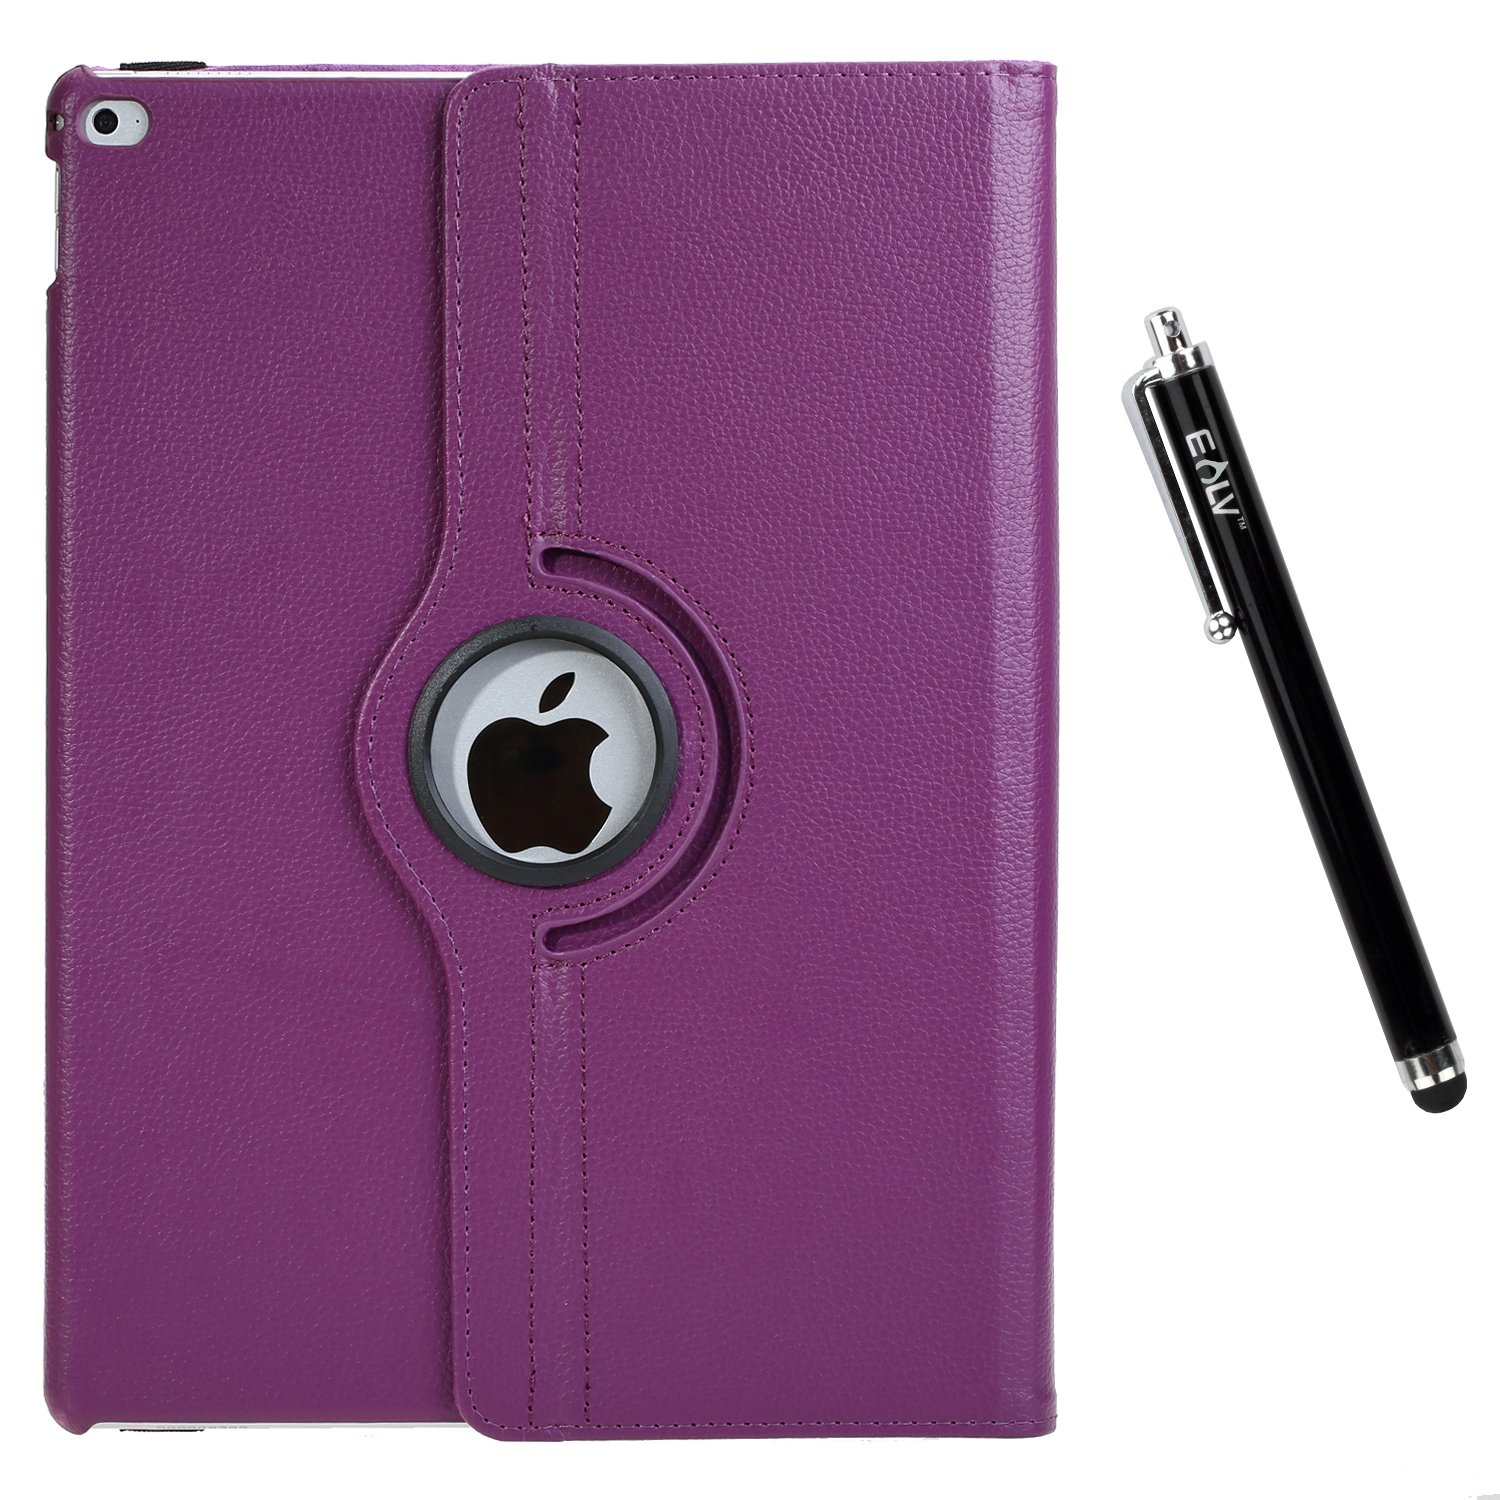 sports shoes 870f6 1ae22 iPad Pro Case - E LV iPad Pro Case Cover Full Body Protection PU LEATHER  Smart Case Cover for APPLE iPad Pro with 1 Stylus and and 1 Microfiber ...